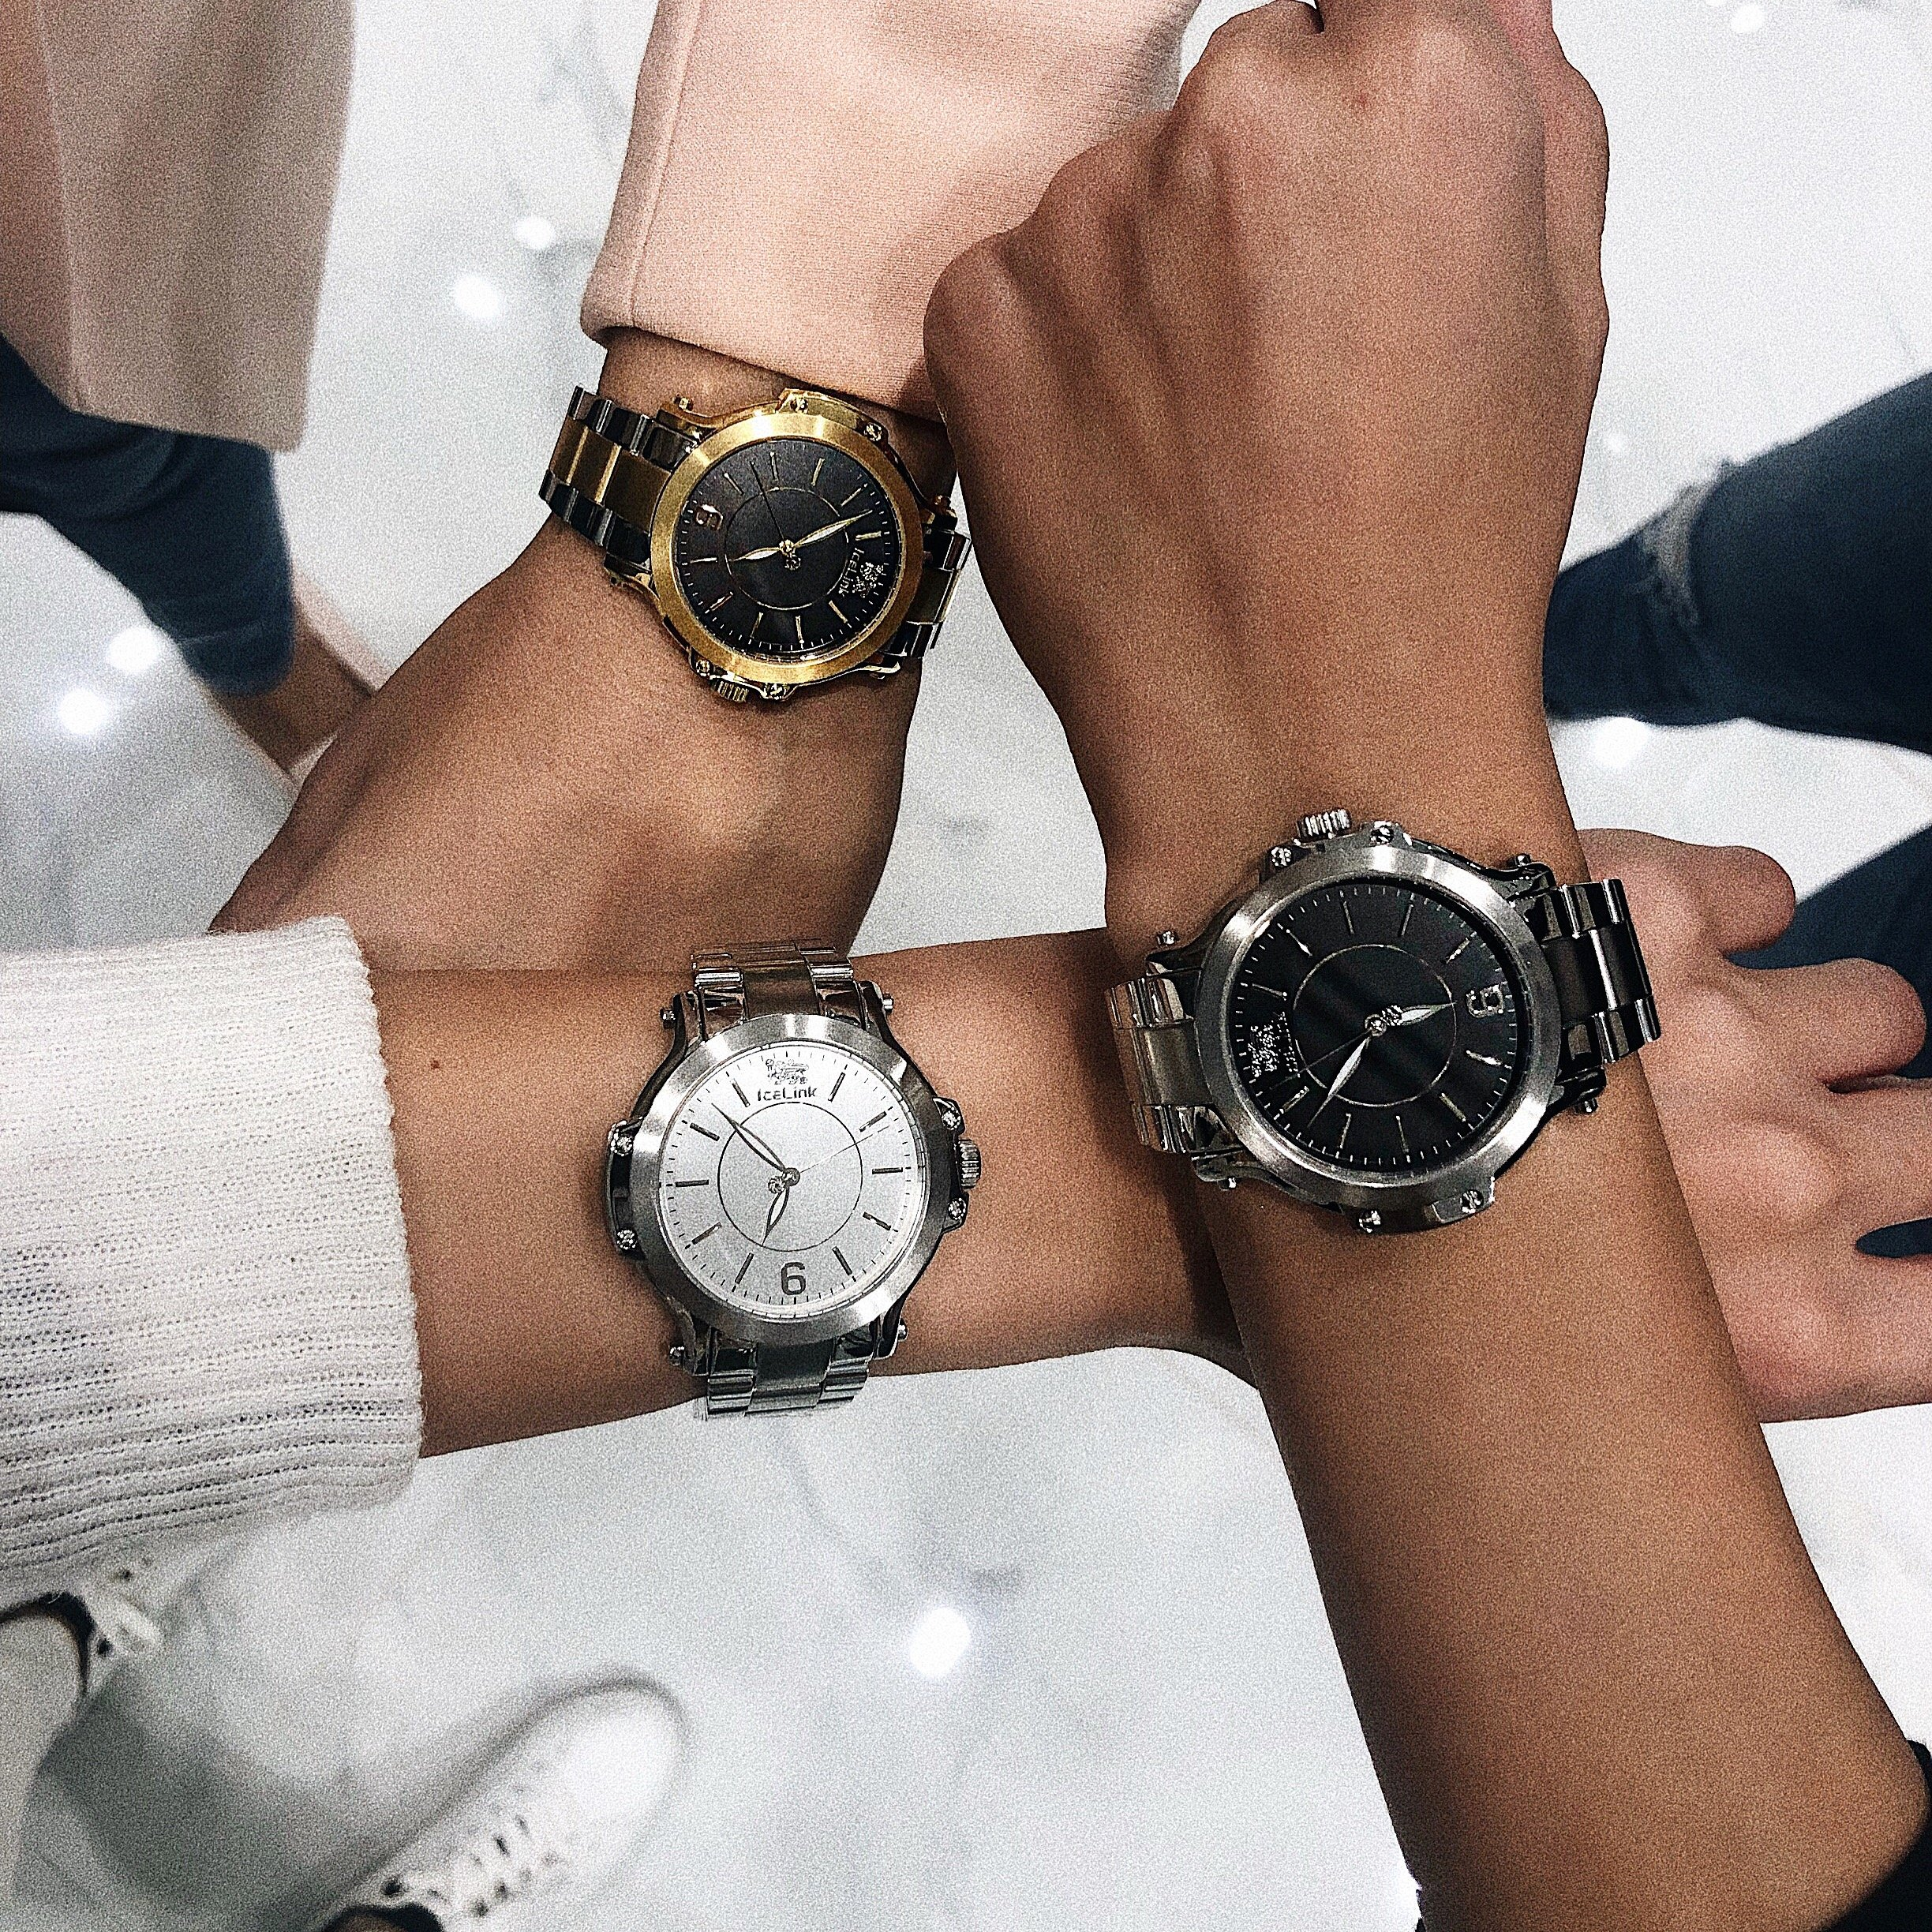 Three arms showing different finishes for the Steel & White Watch